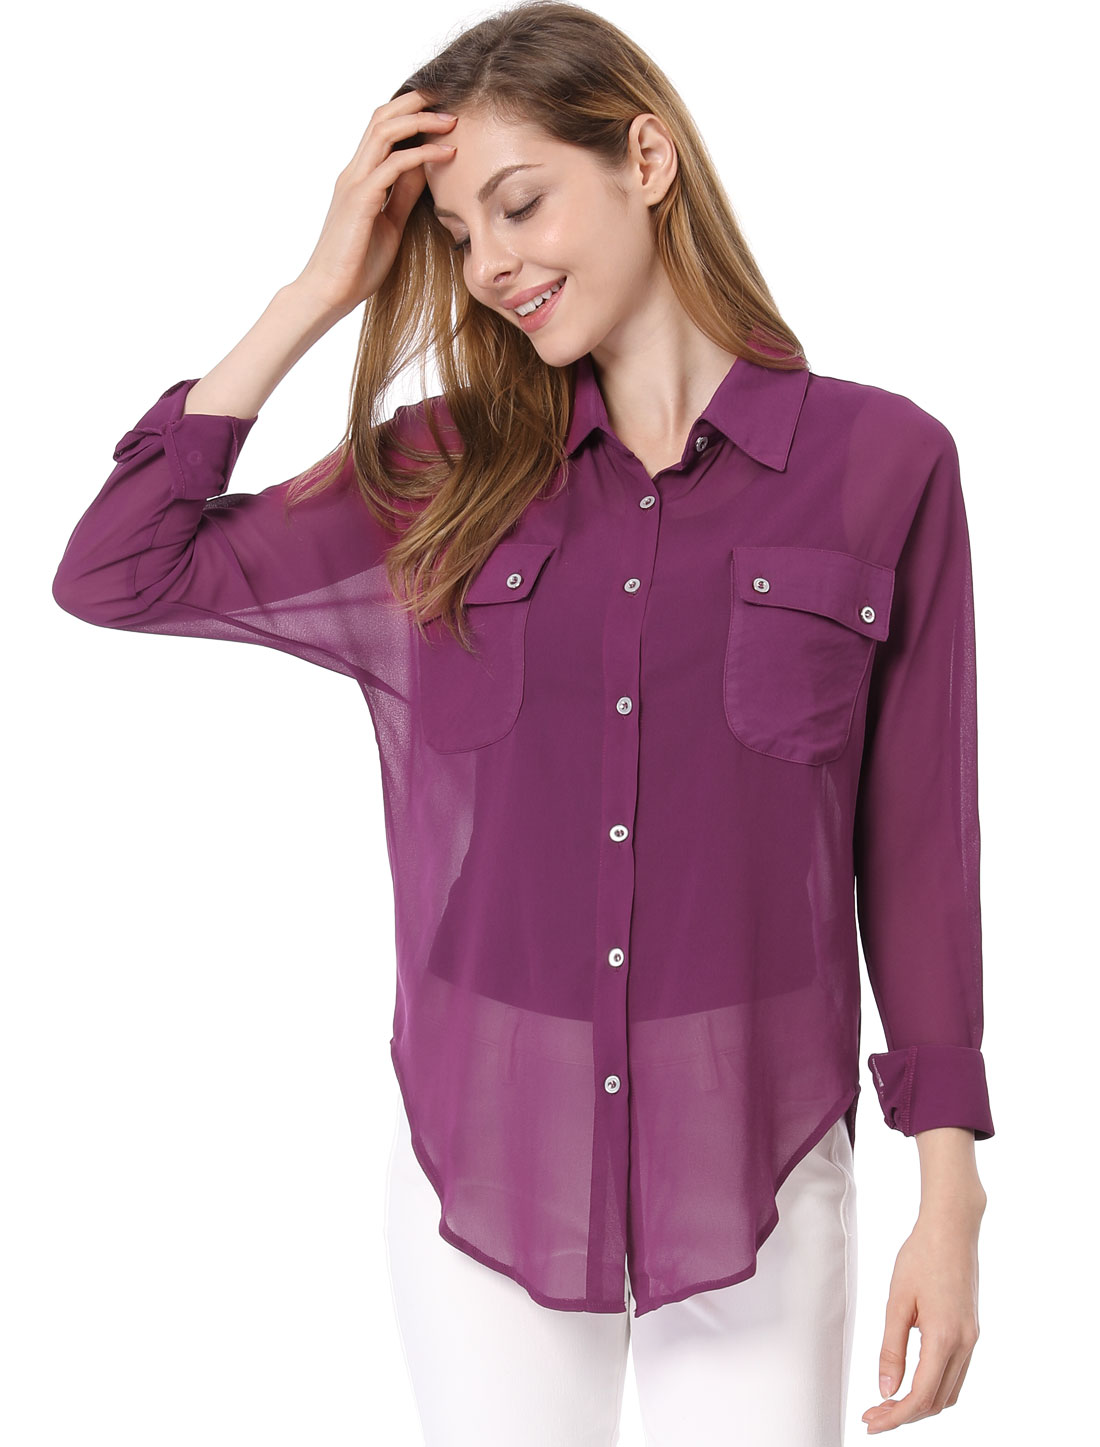 Women Two Flap Pockets Button Front Casual Tunic Chiffon Shirt Violet L